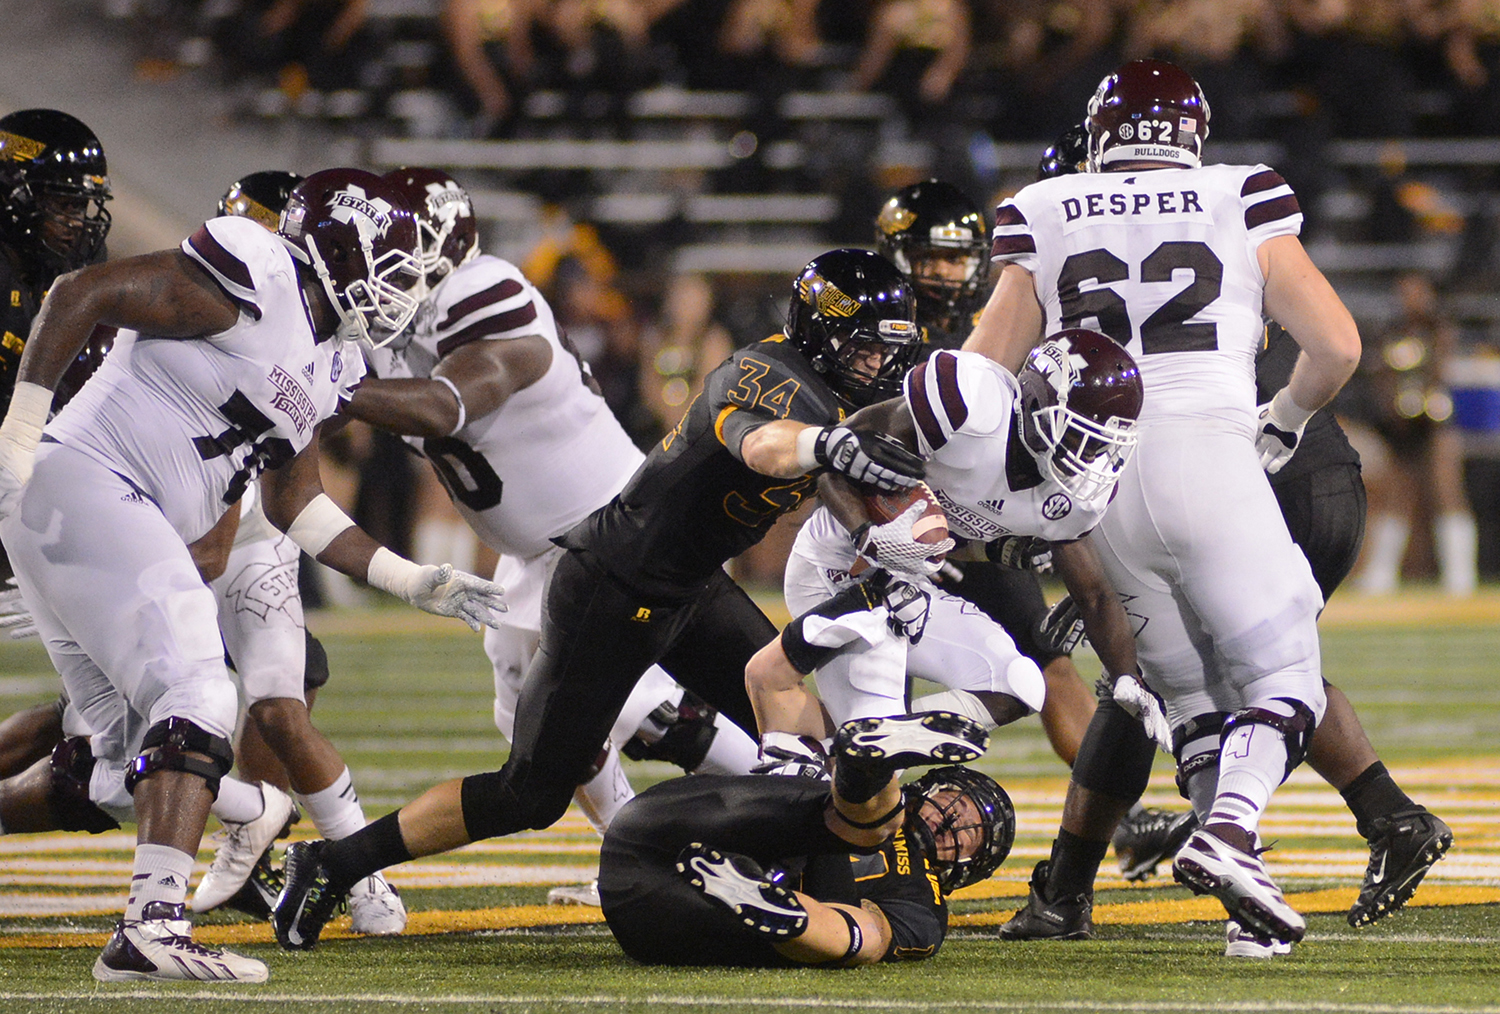 Southern Miss linebacker Evan Osborne brings down Mississippi State offense during the game played in Hattiesburg on Saturday night. Mary Alice Weeks/Student Printz